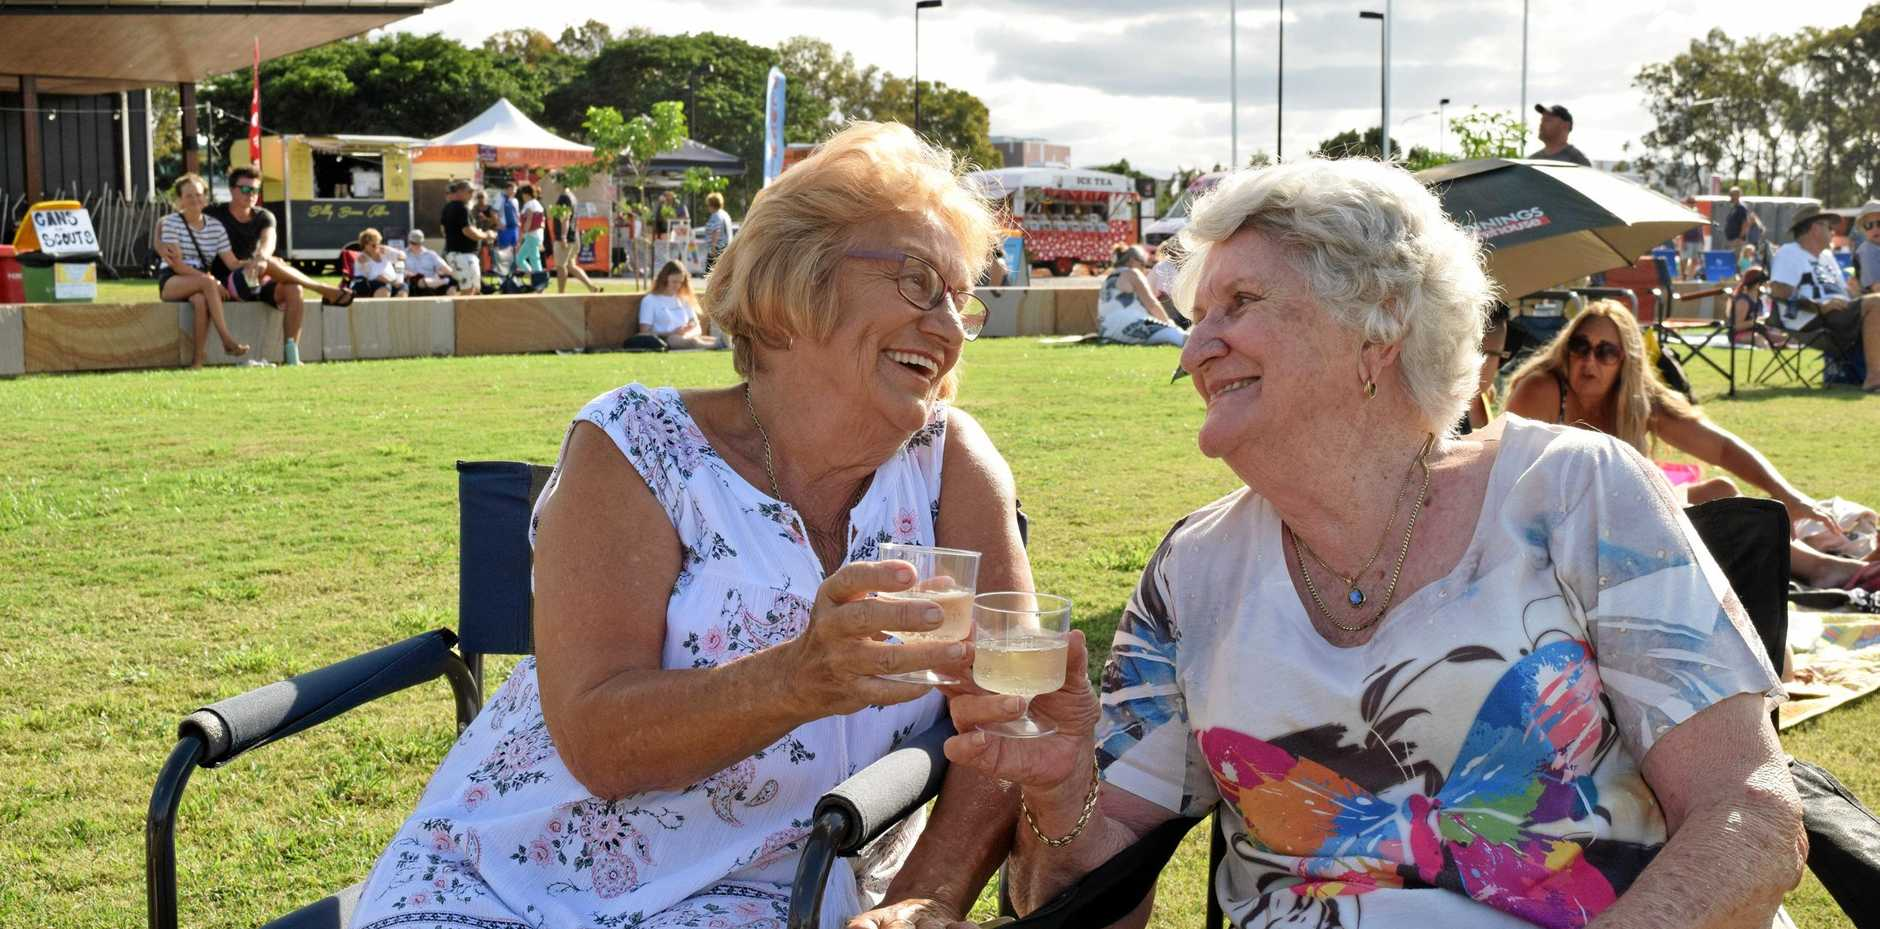 BUBBLES AND BLISS: Hervey Bay locals Pauline Derich and Margaret Porter enjoy the live entertainment at Food 'n' Groove Fridays at the Pialba City Park yesterday.